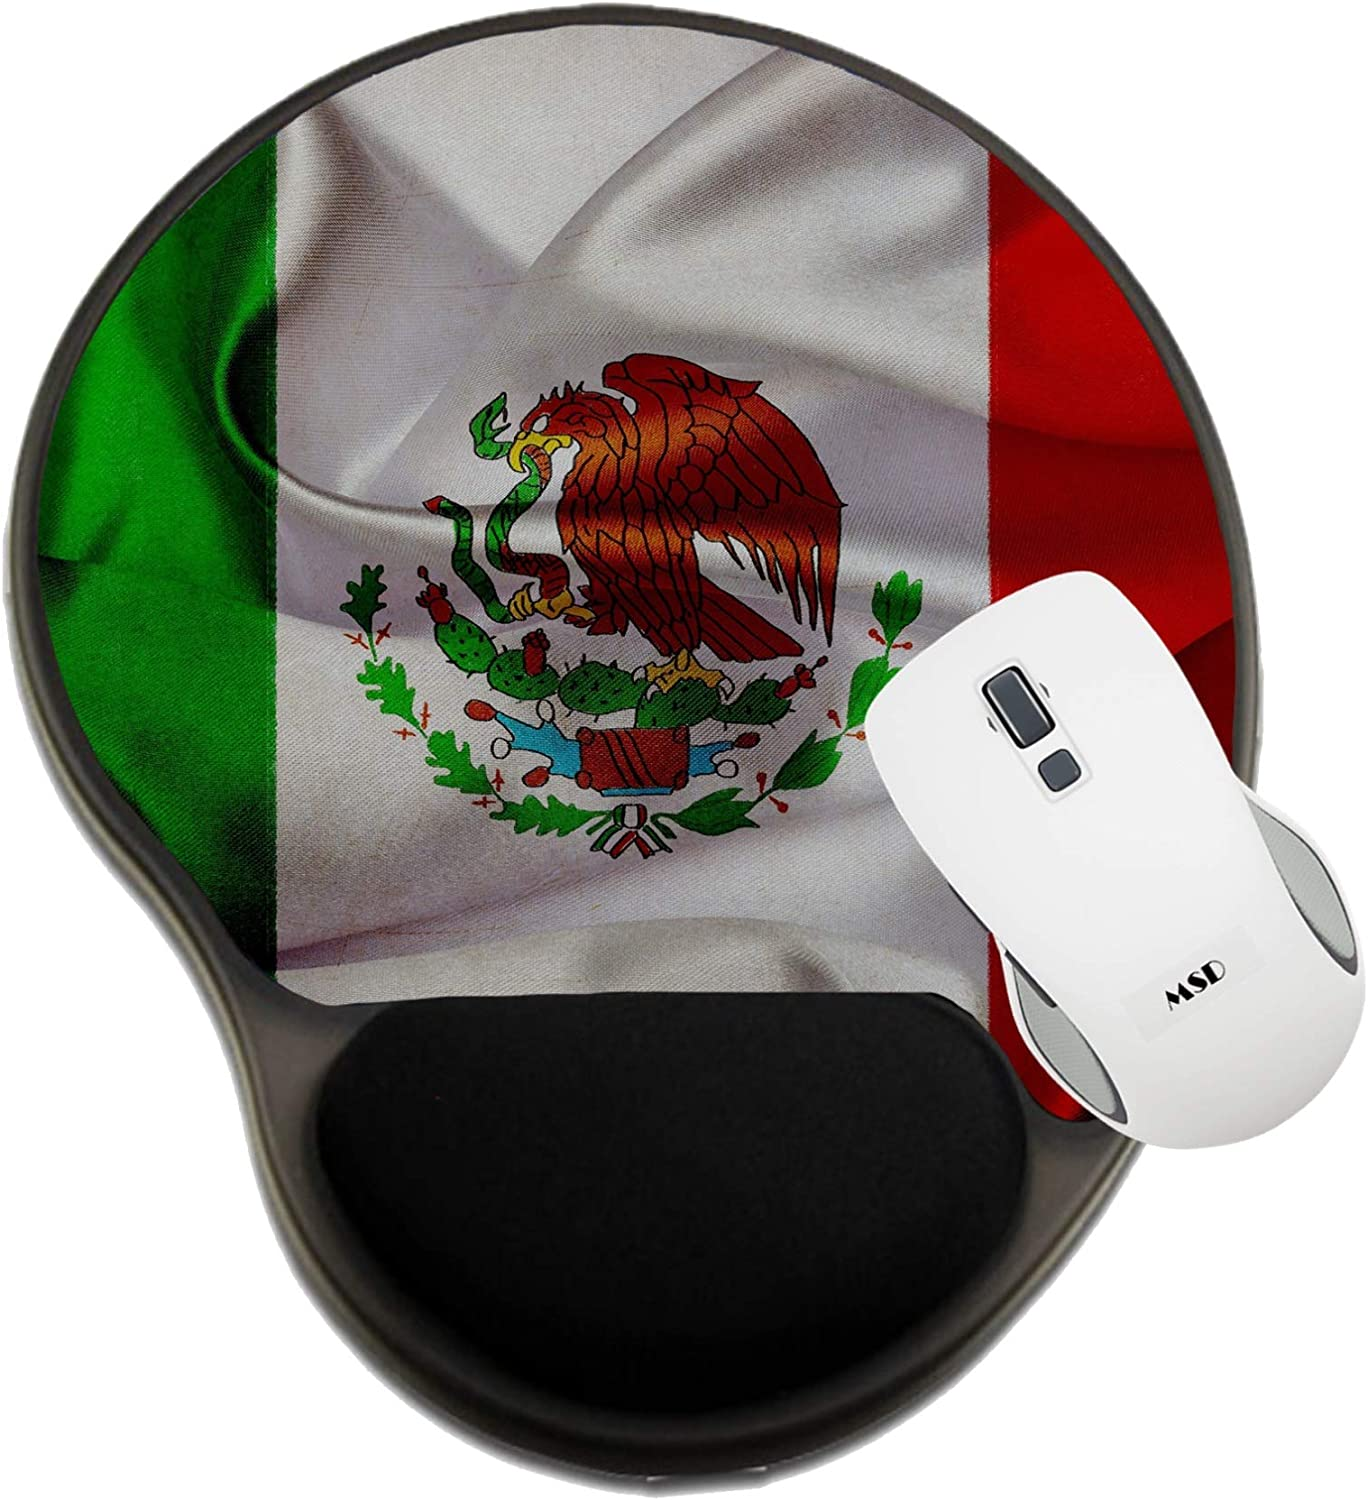 MSD Mousepad Wrist Rest Protected Mouse Pads Image ID 19036569 Mexico Grunge Waving Flag Mat with Wrist Support